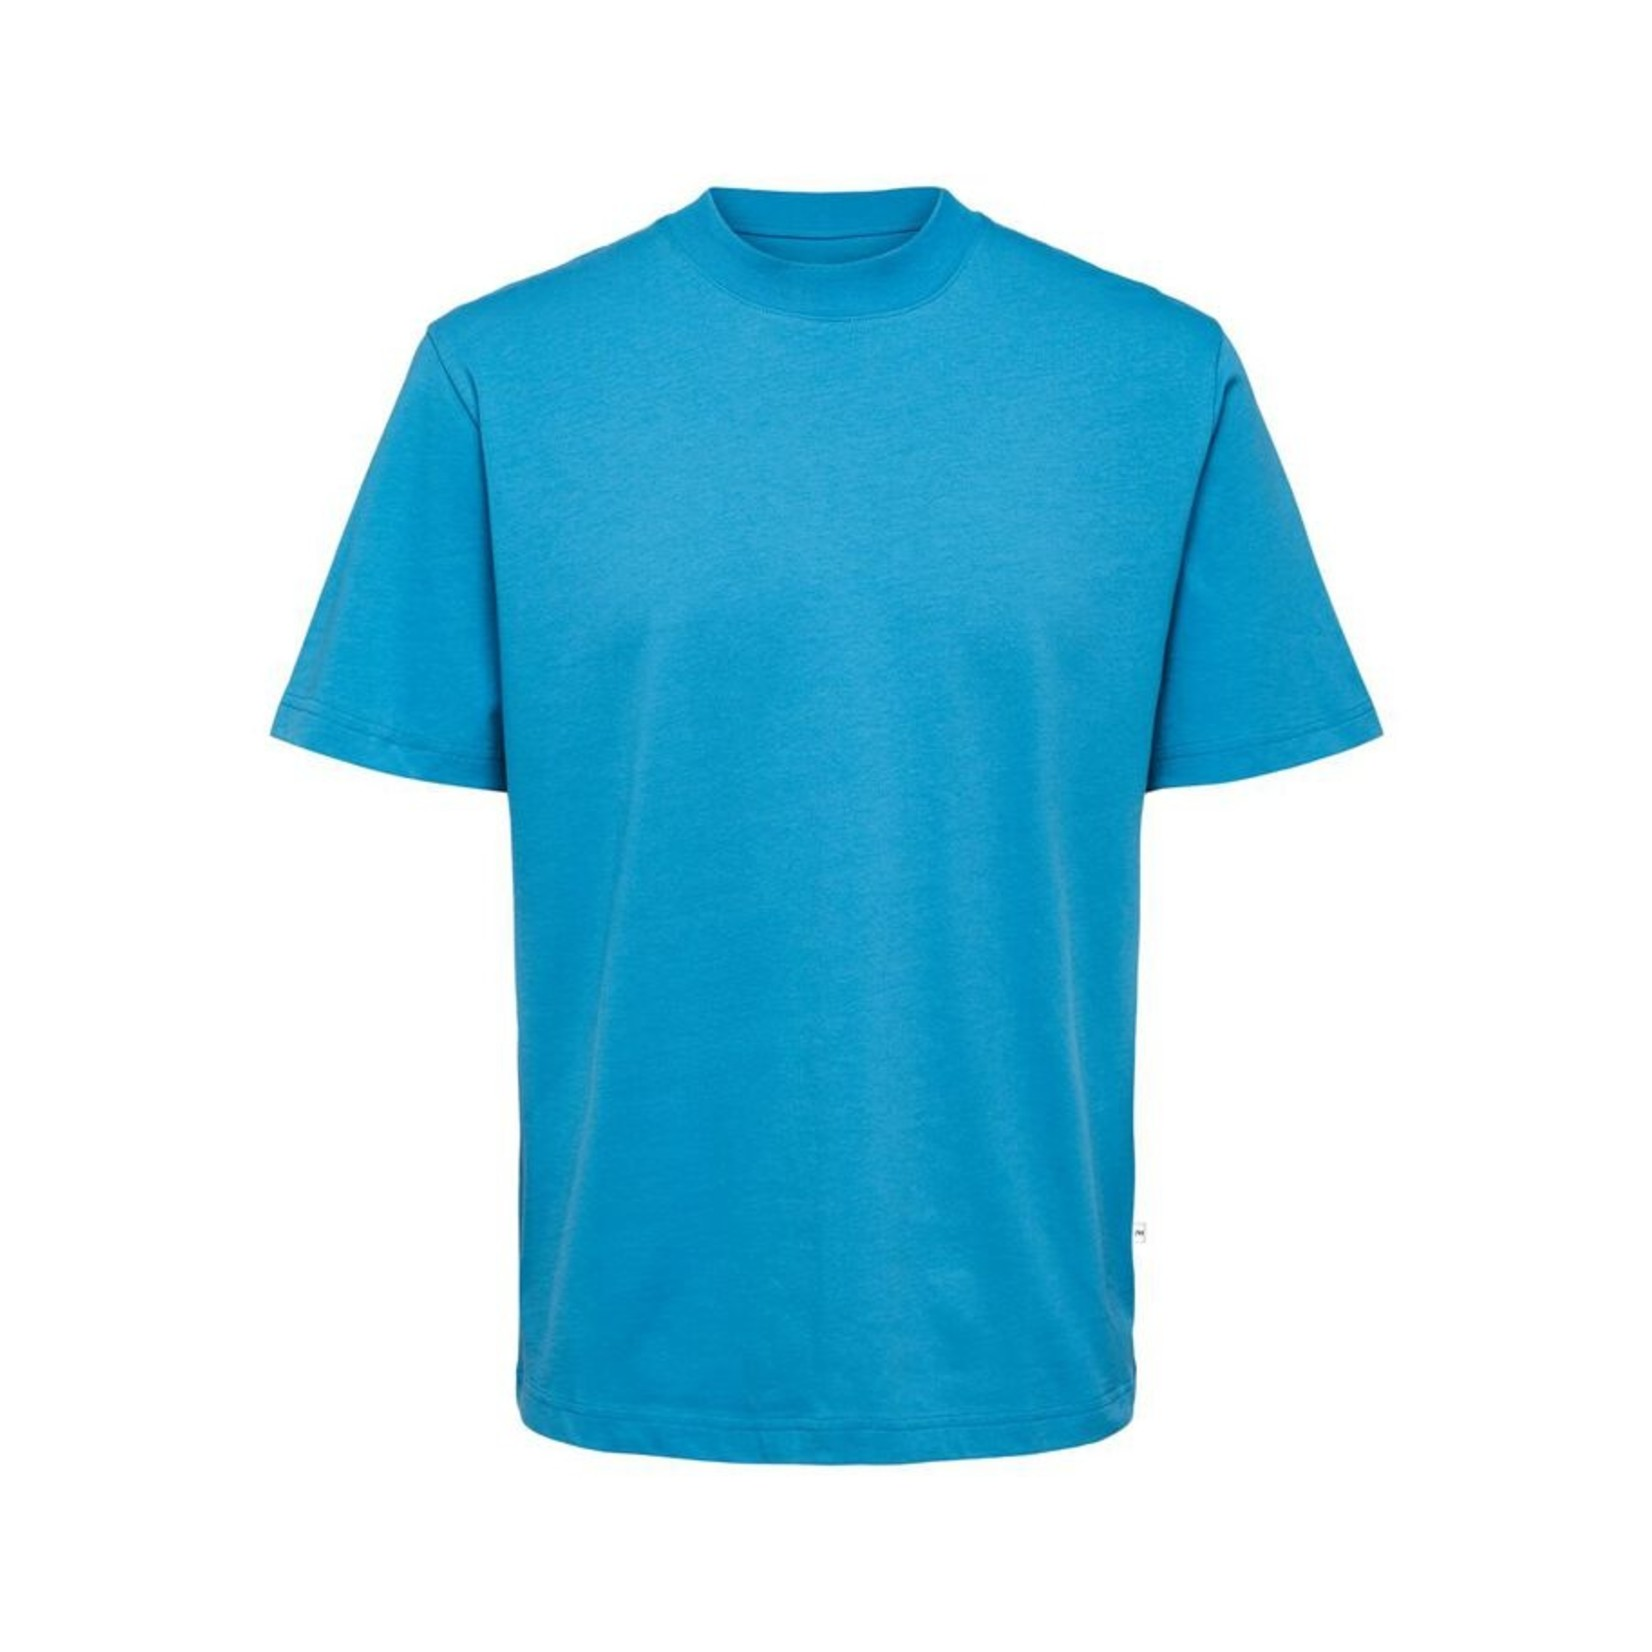 Selected Homme Selected Homme 1607738 Colman Relaxed Tee - Bluejay